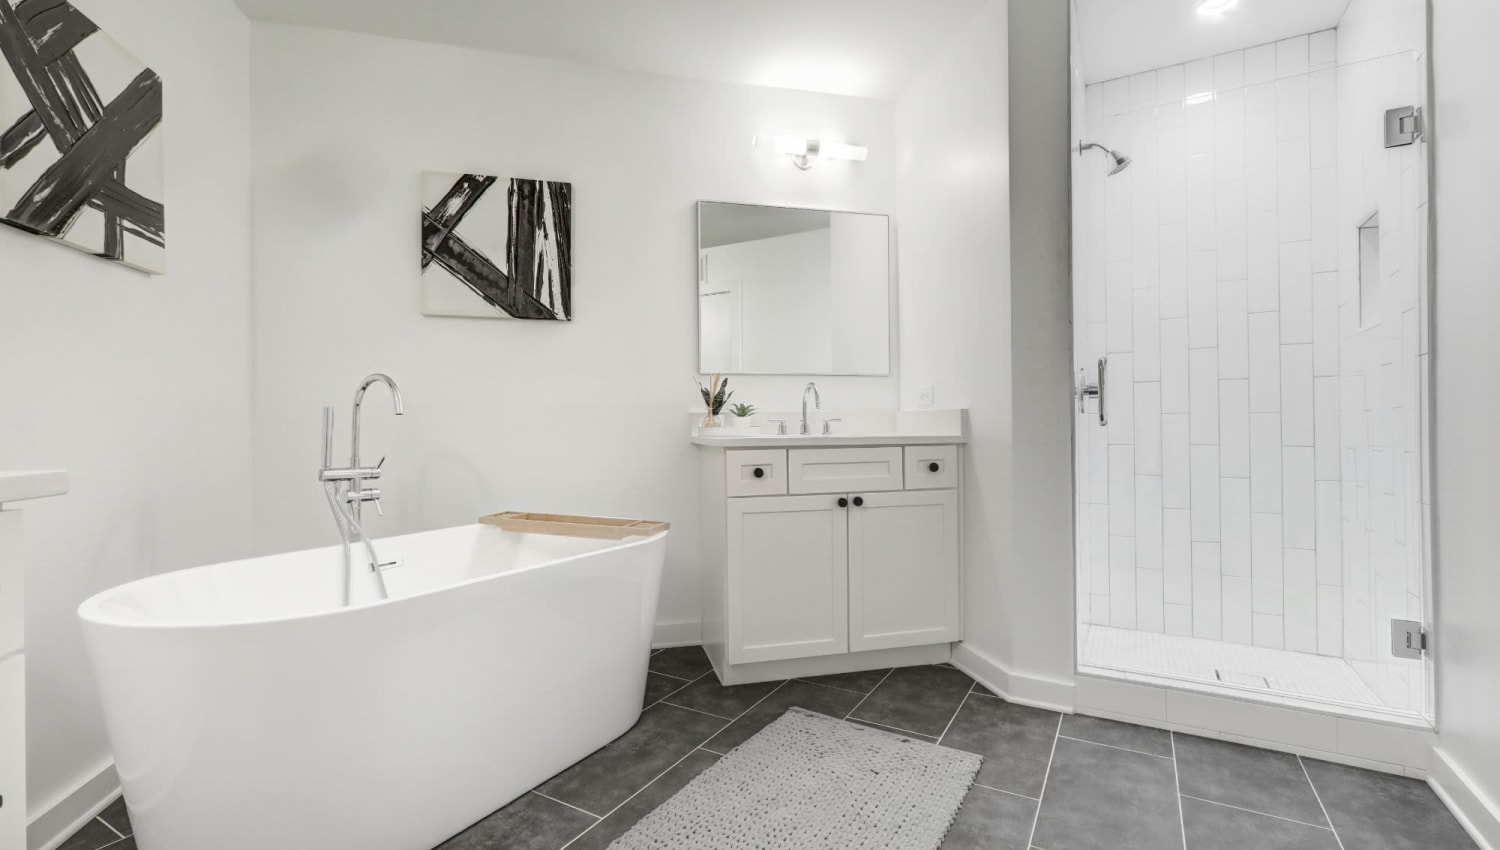 Very open bathroom with large jacuzzi style bath at 17th Street Lofts in Atlanta, Georgia